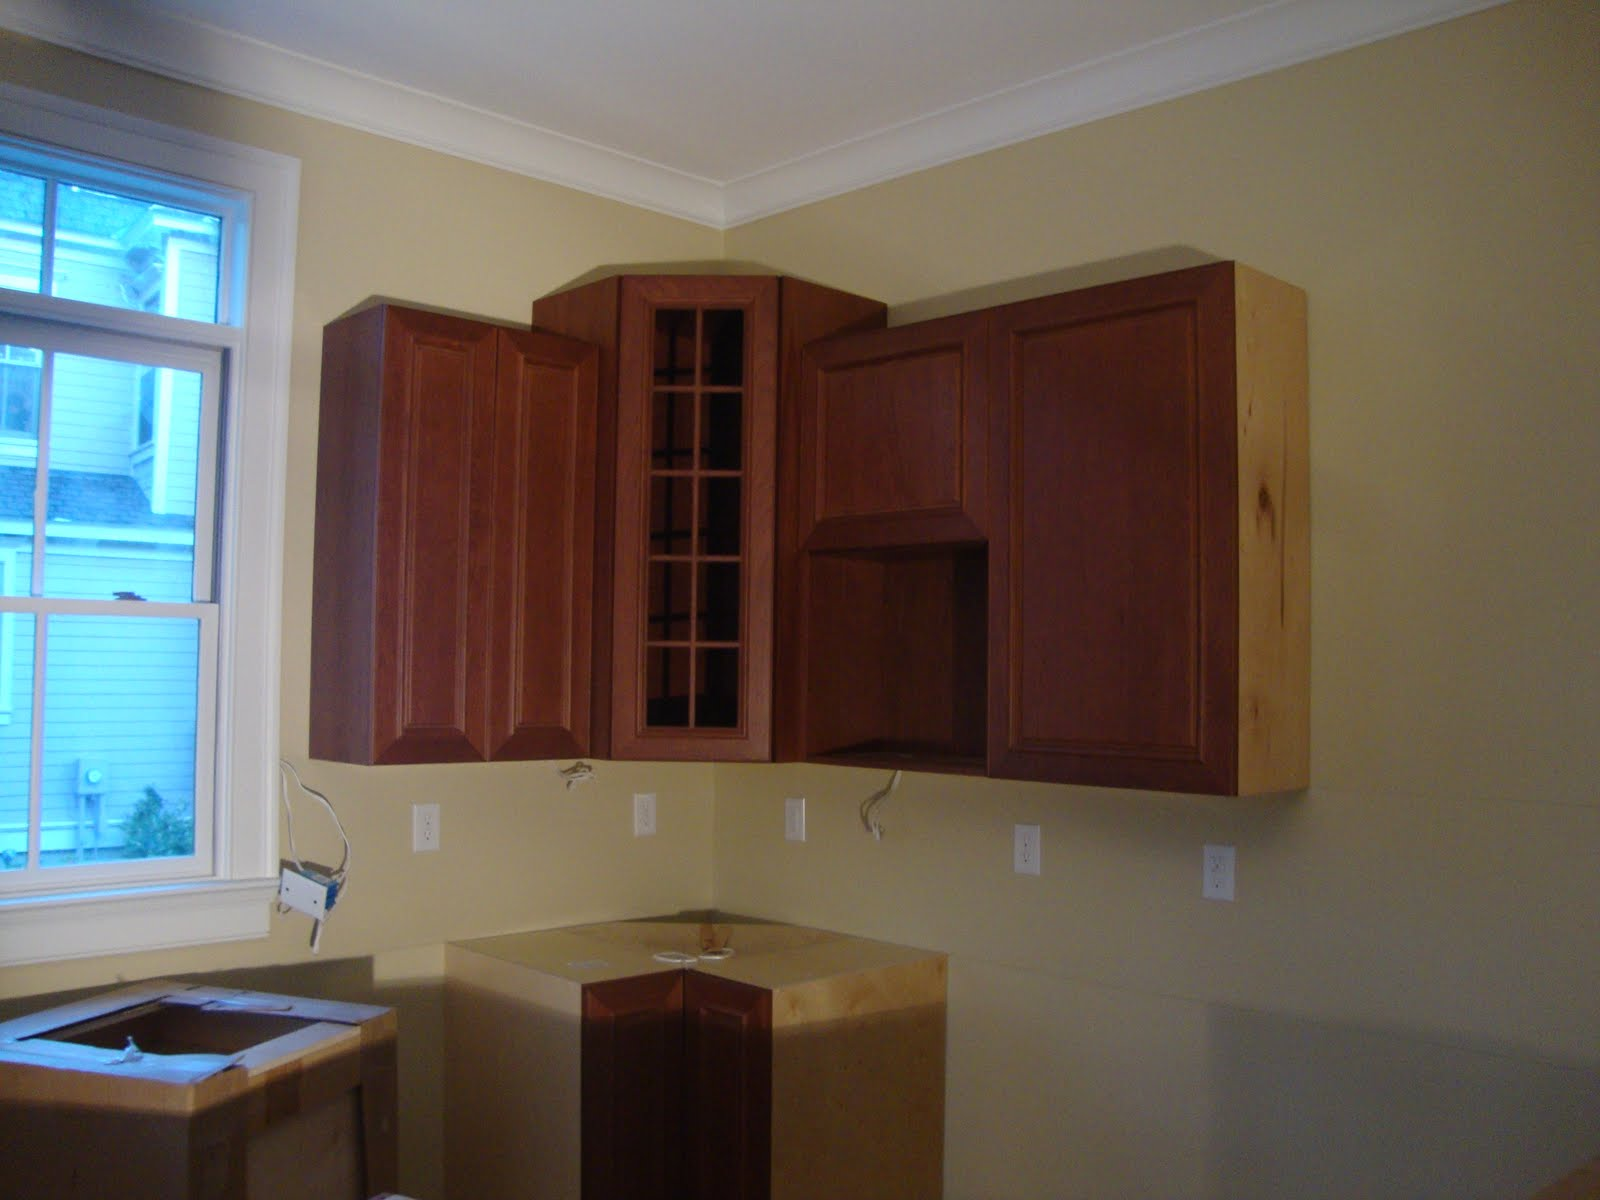 Sherwin williams believable buff - The Color Is Cherry Merlot And Looks Great With Believable Buff By Sherwin Williams